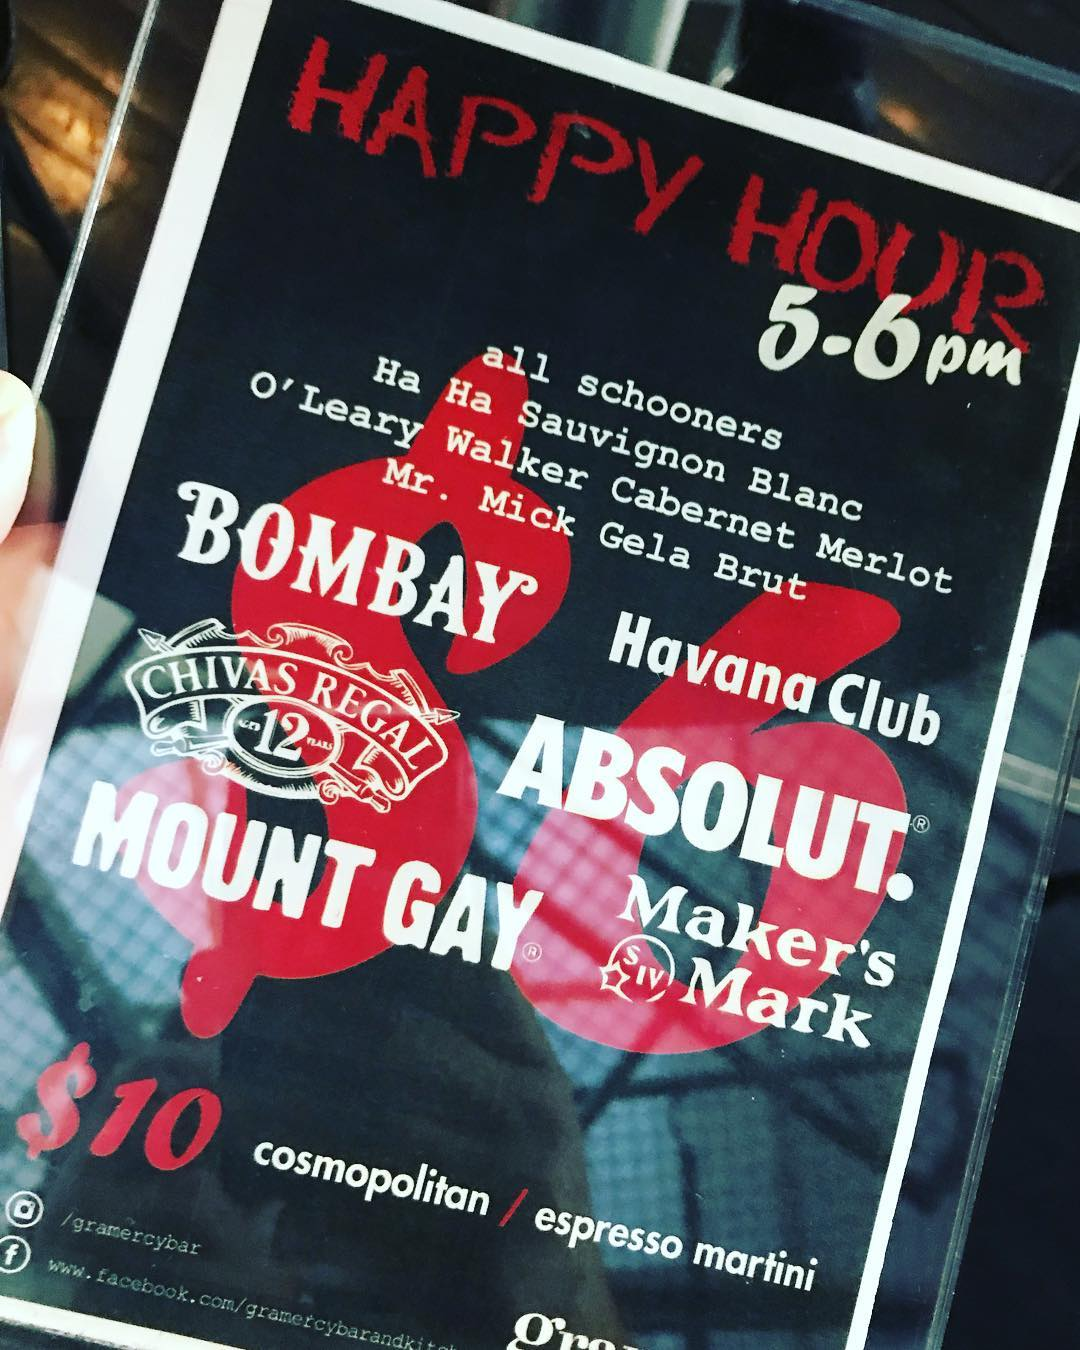 gramercy happyhour is in effect 6 selected drinks and ourhellip